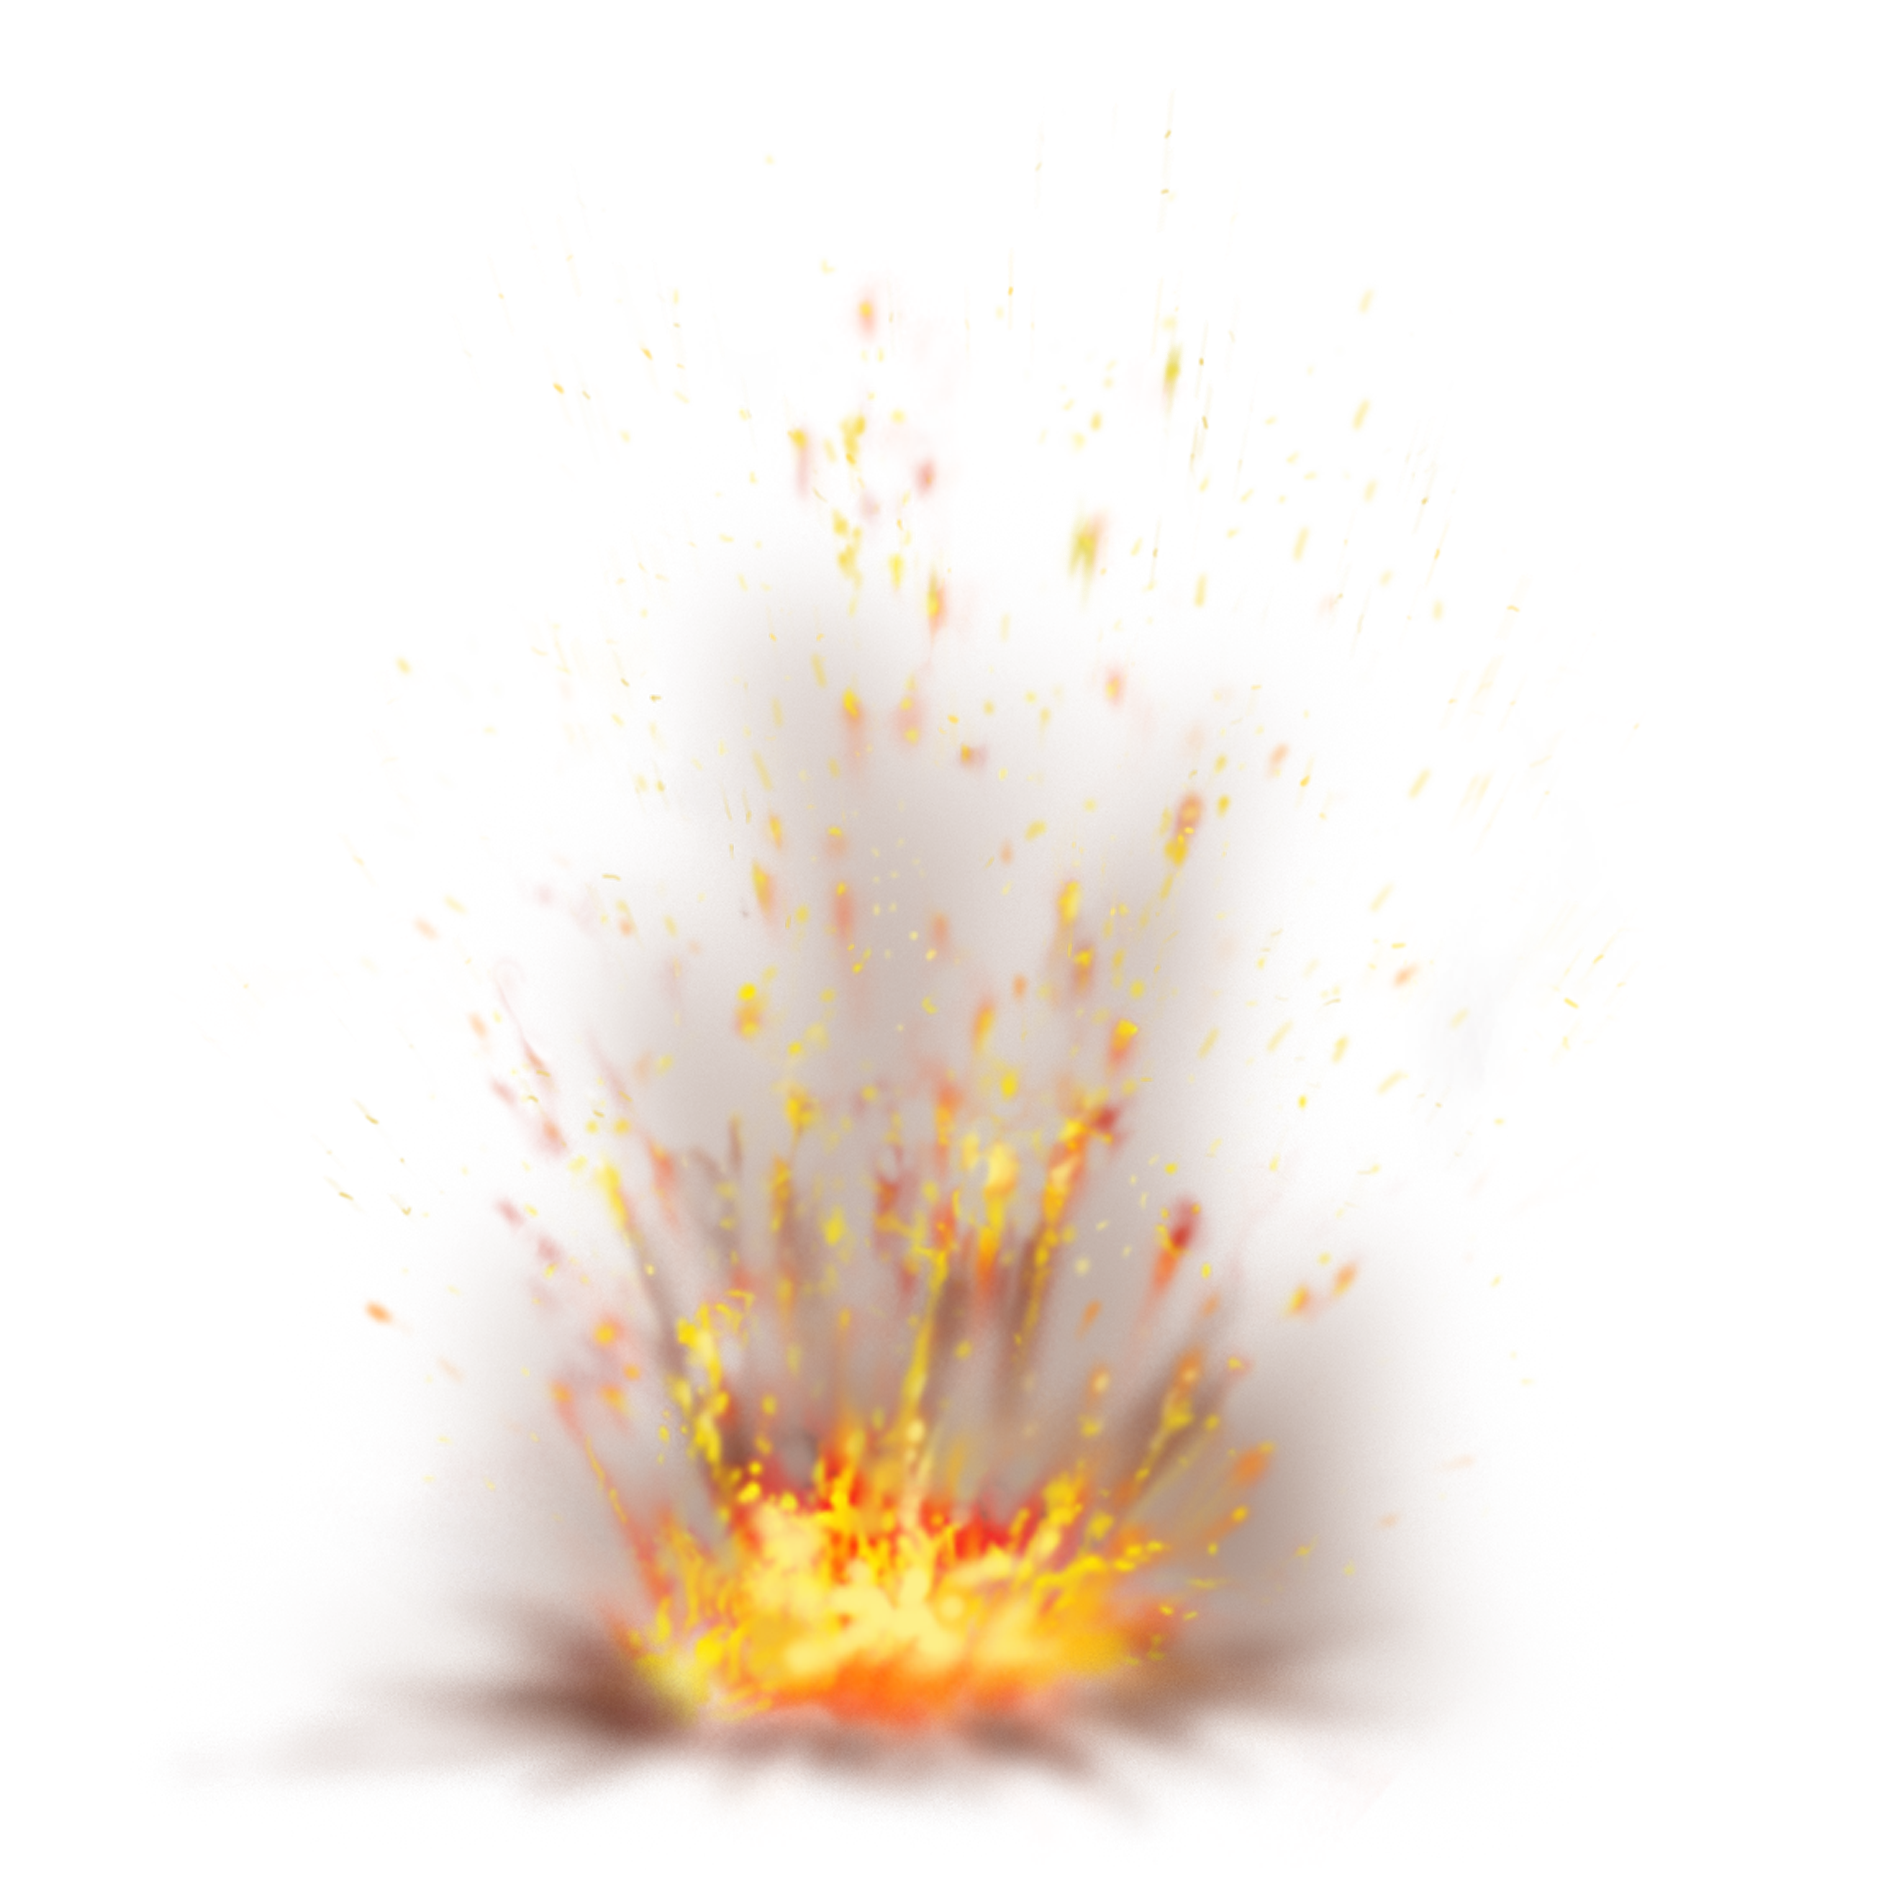 Fire Smoke Transparent Background